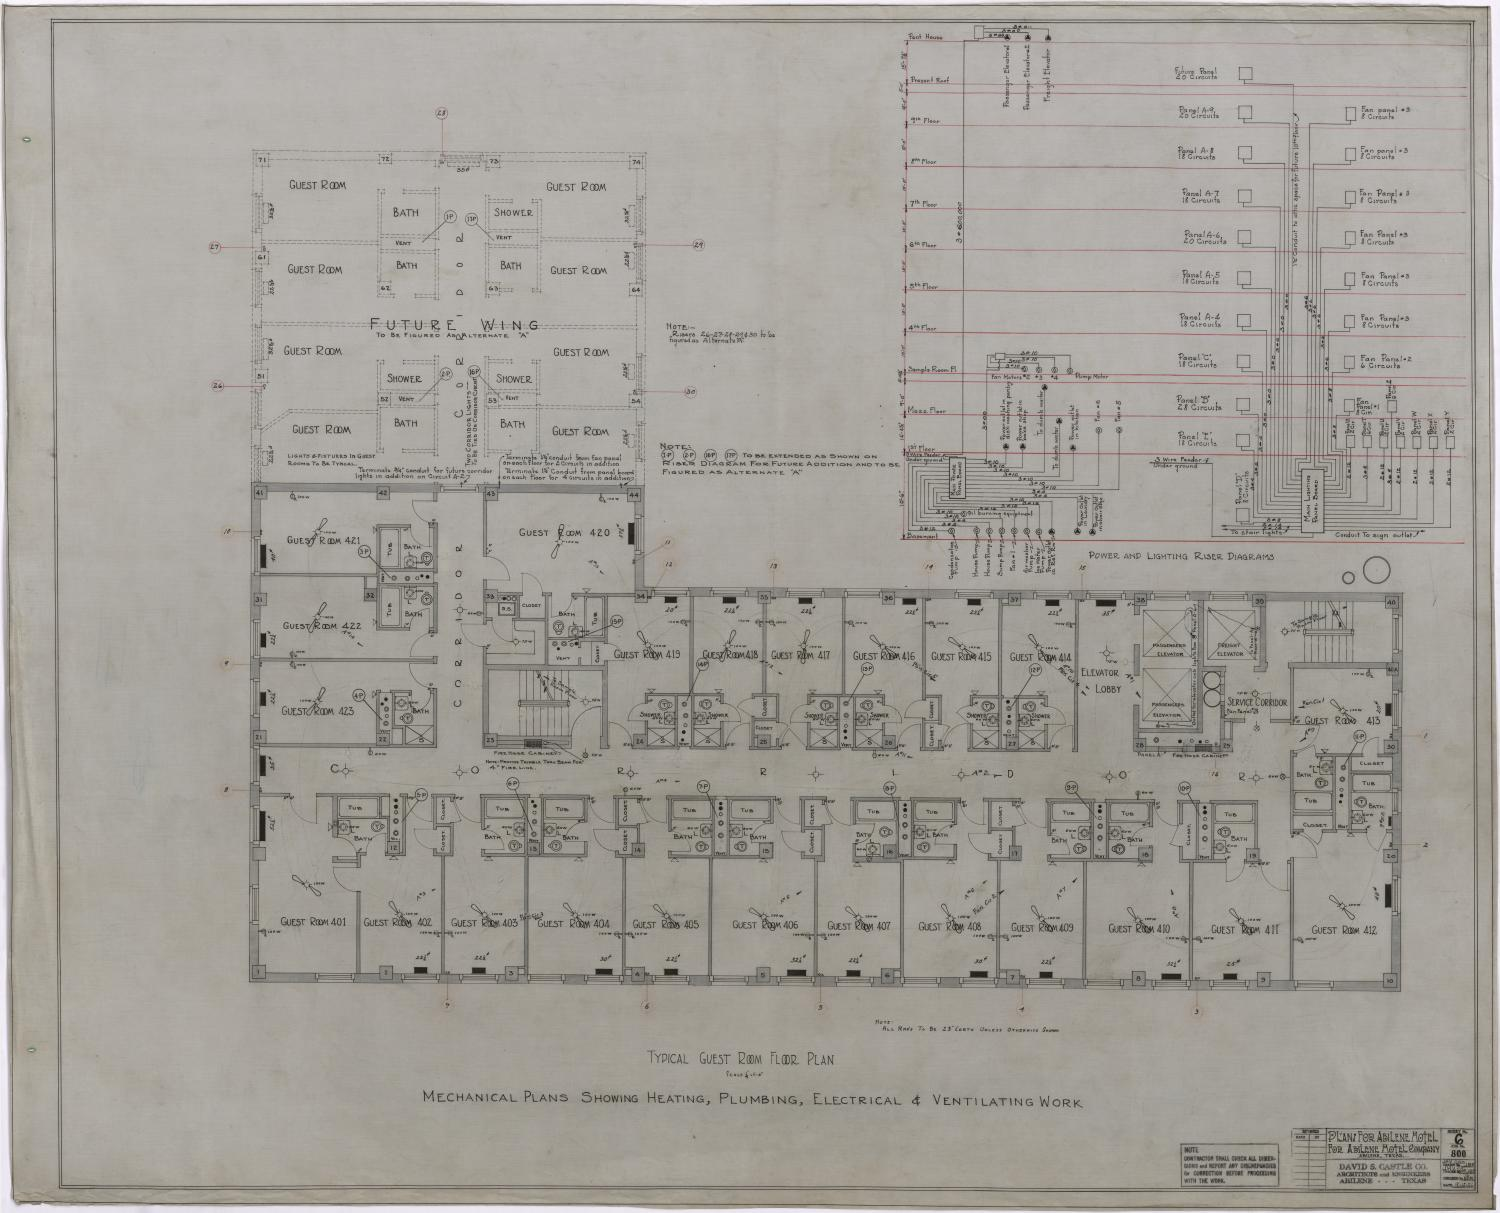 Abilene Hotel Mechanical Plans: Typical Guest Room Floor Plan - The ...